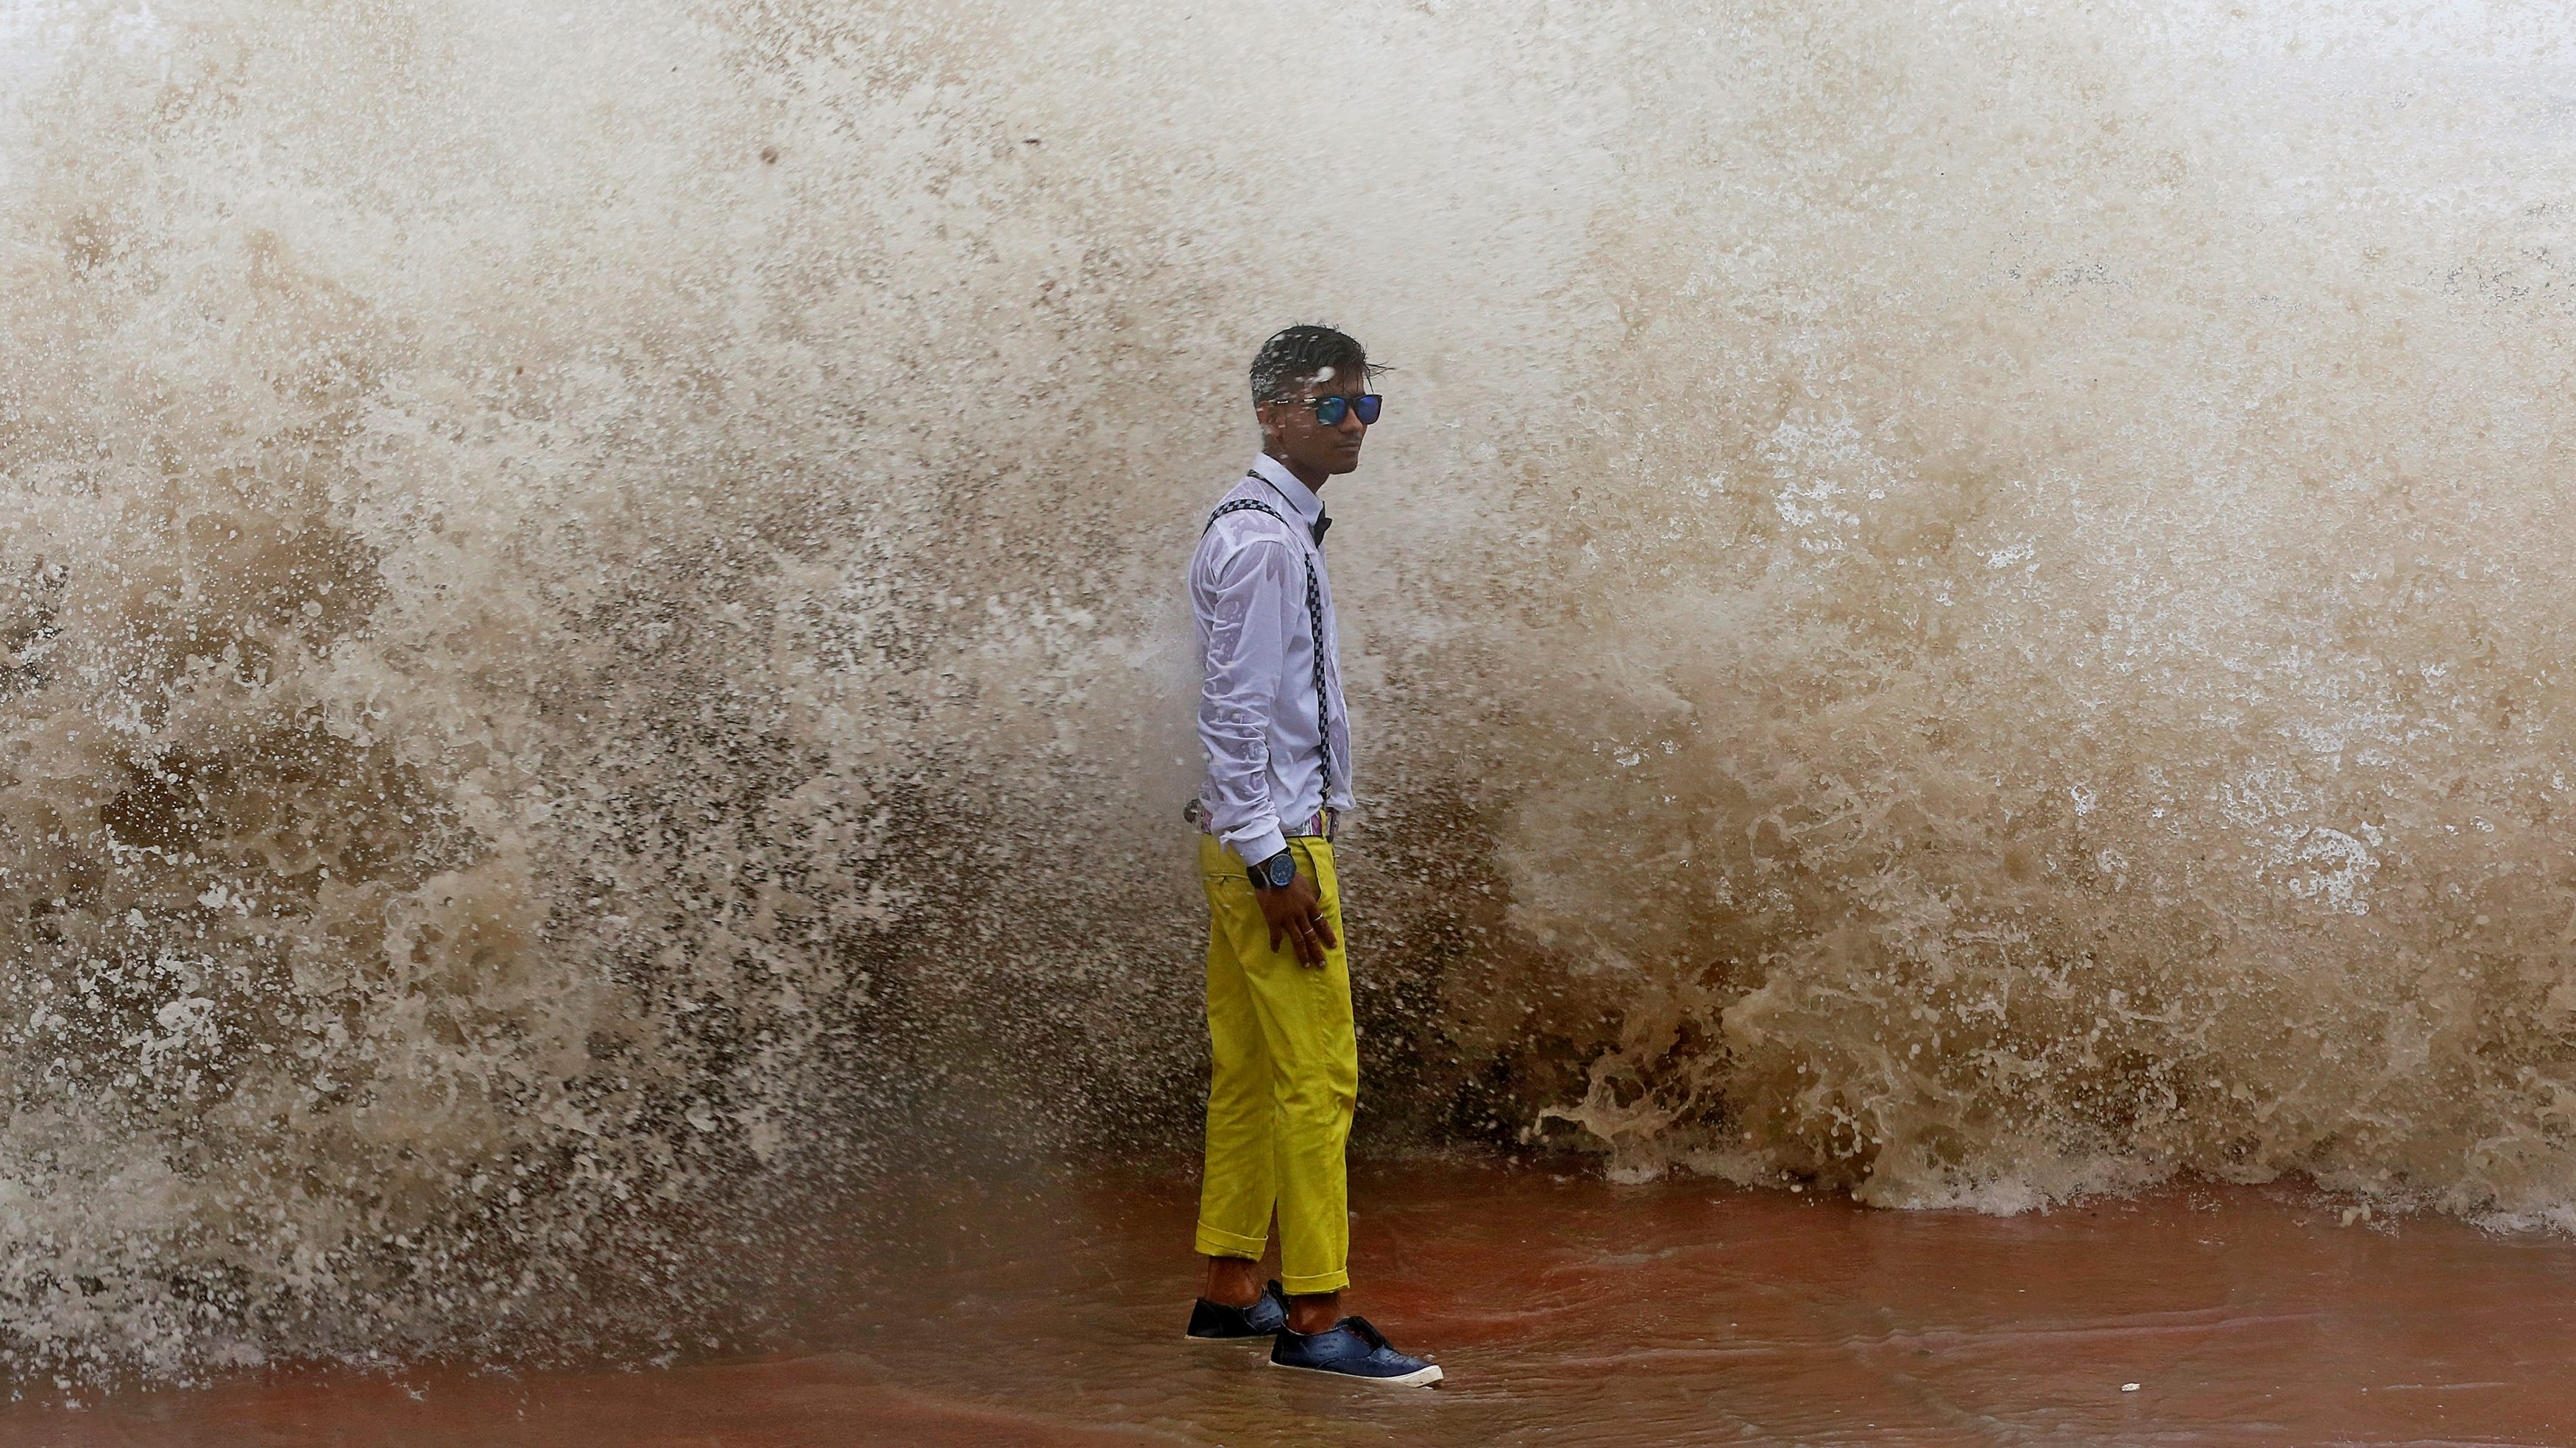 A boy poses for a photograph during a high tide in Mumbai, India June 27, 2017.